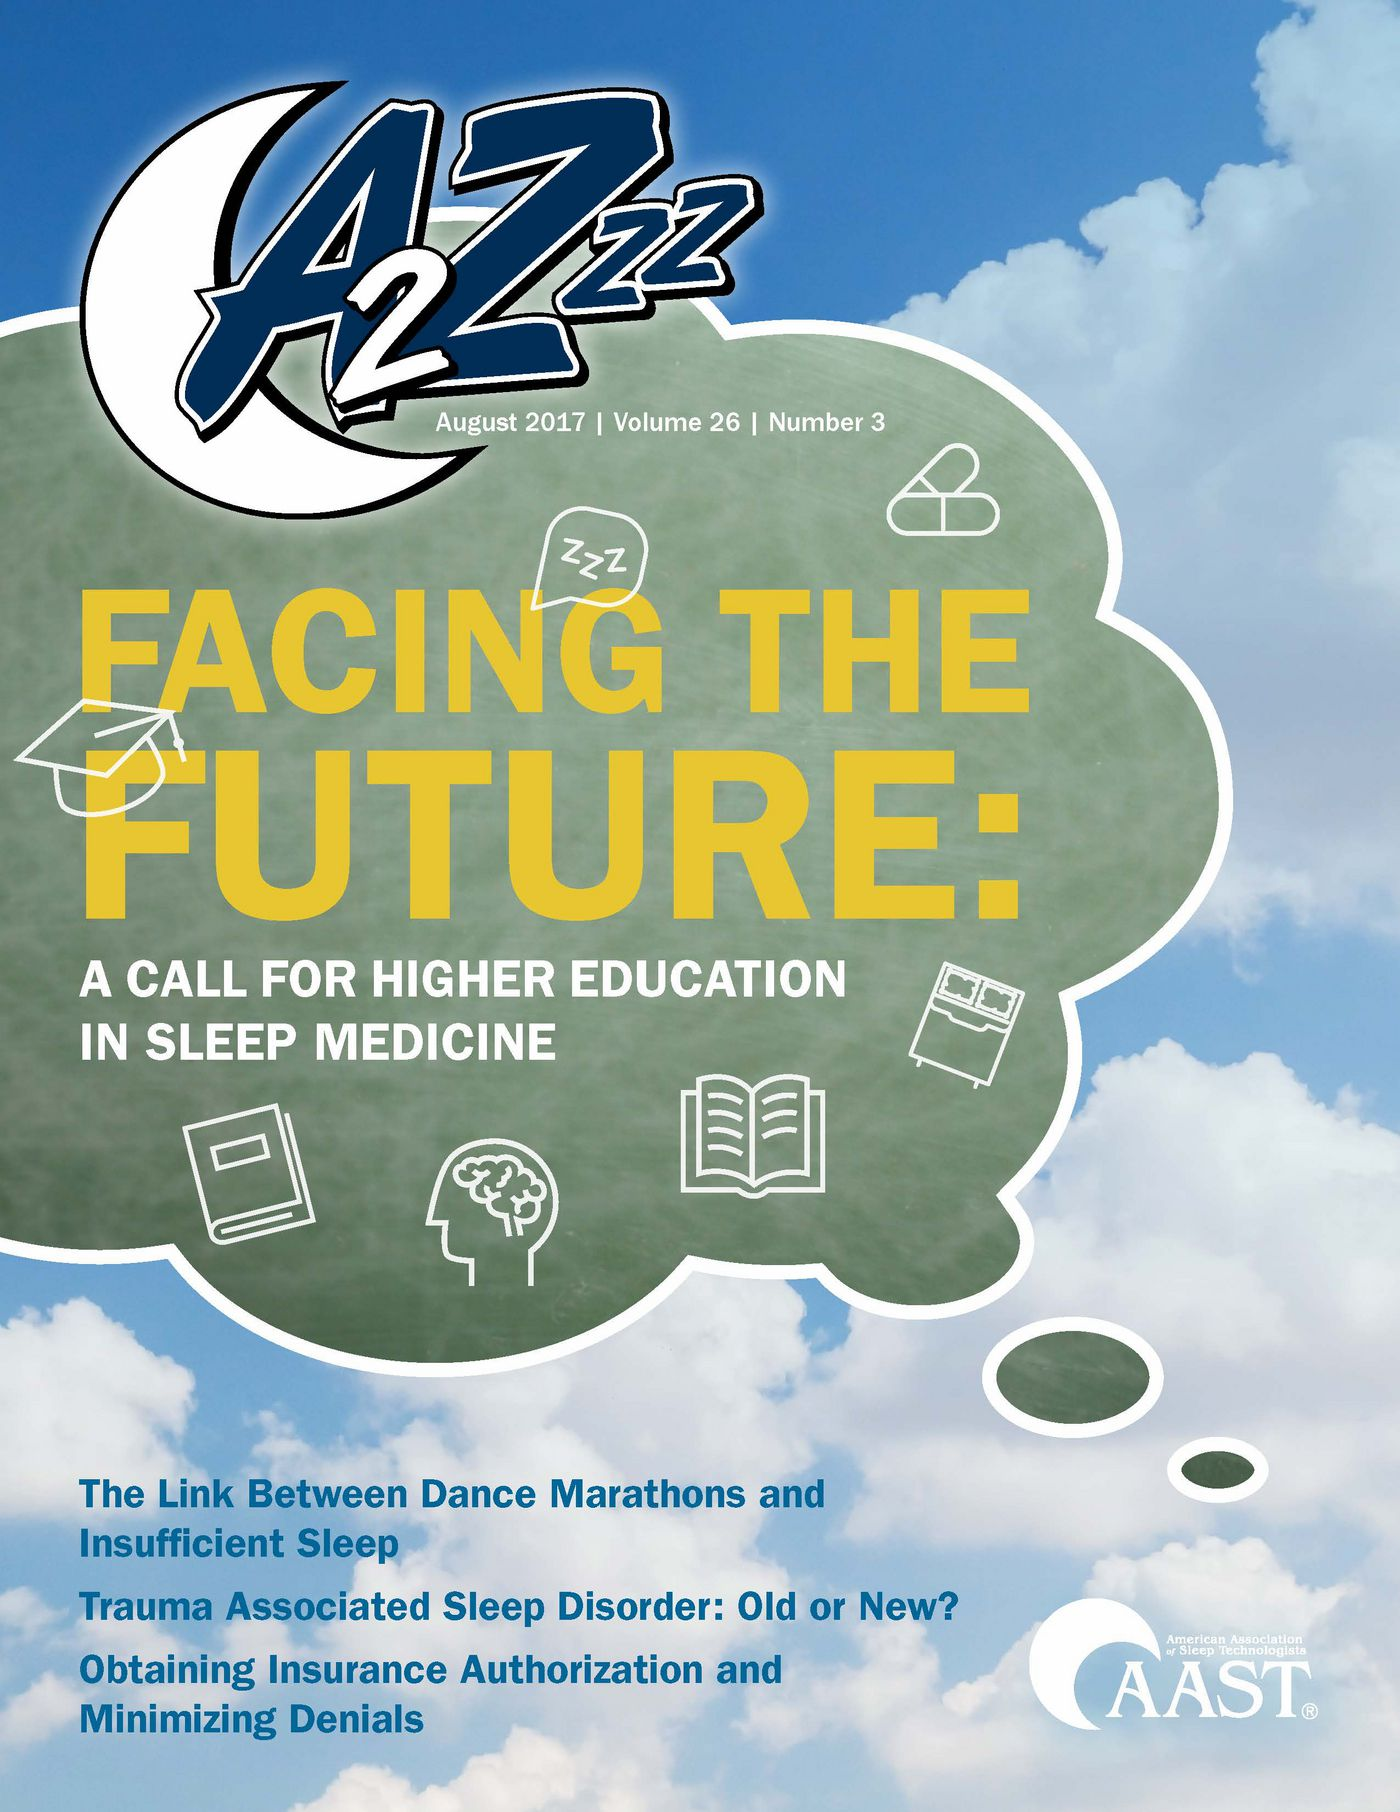 AAST_177002-17_A2Zzz_Q3_cover.jpg